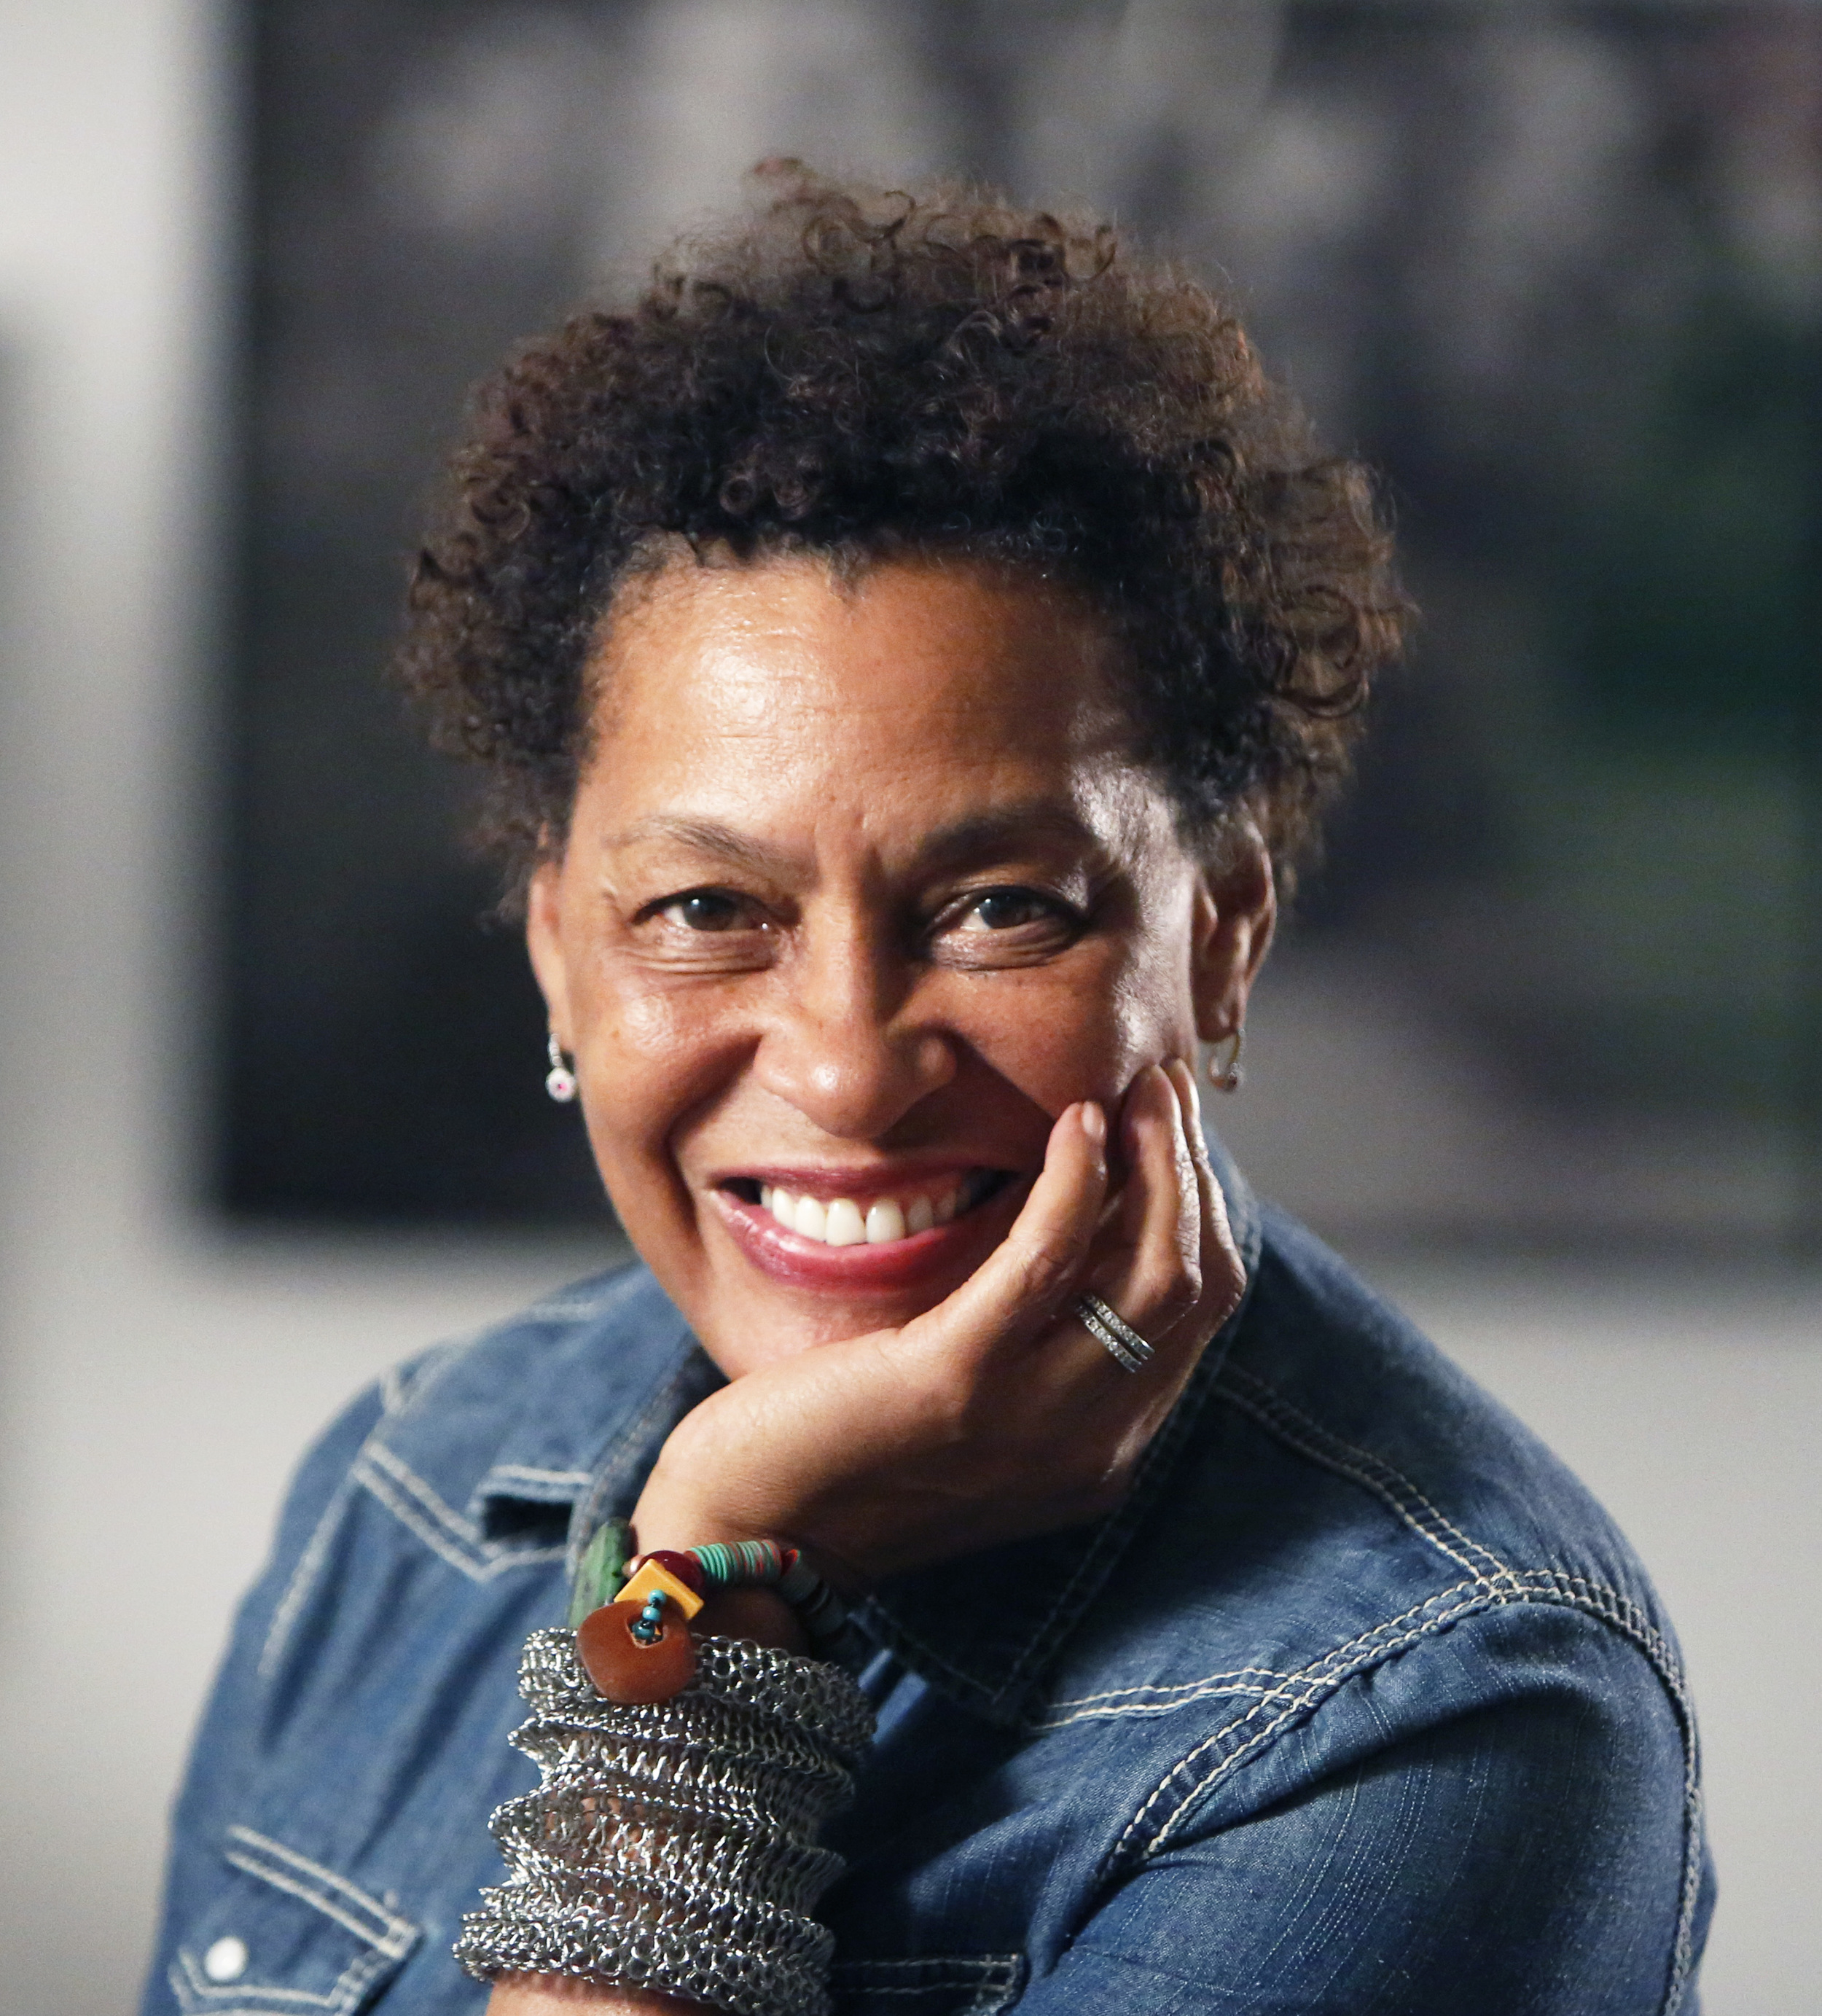 Carrie Mae Weems. By John D. & Catherine T. MacArthur Foundation